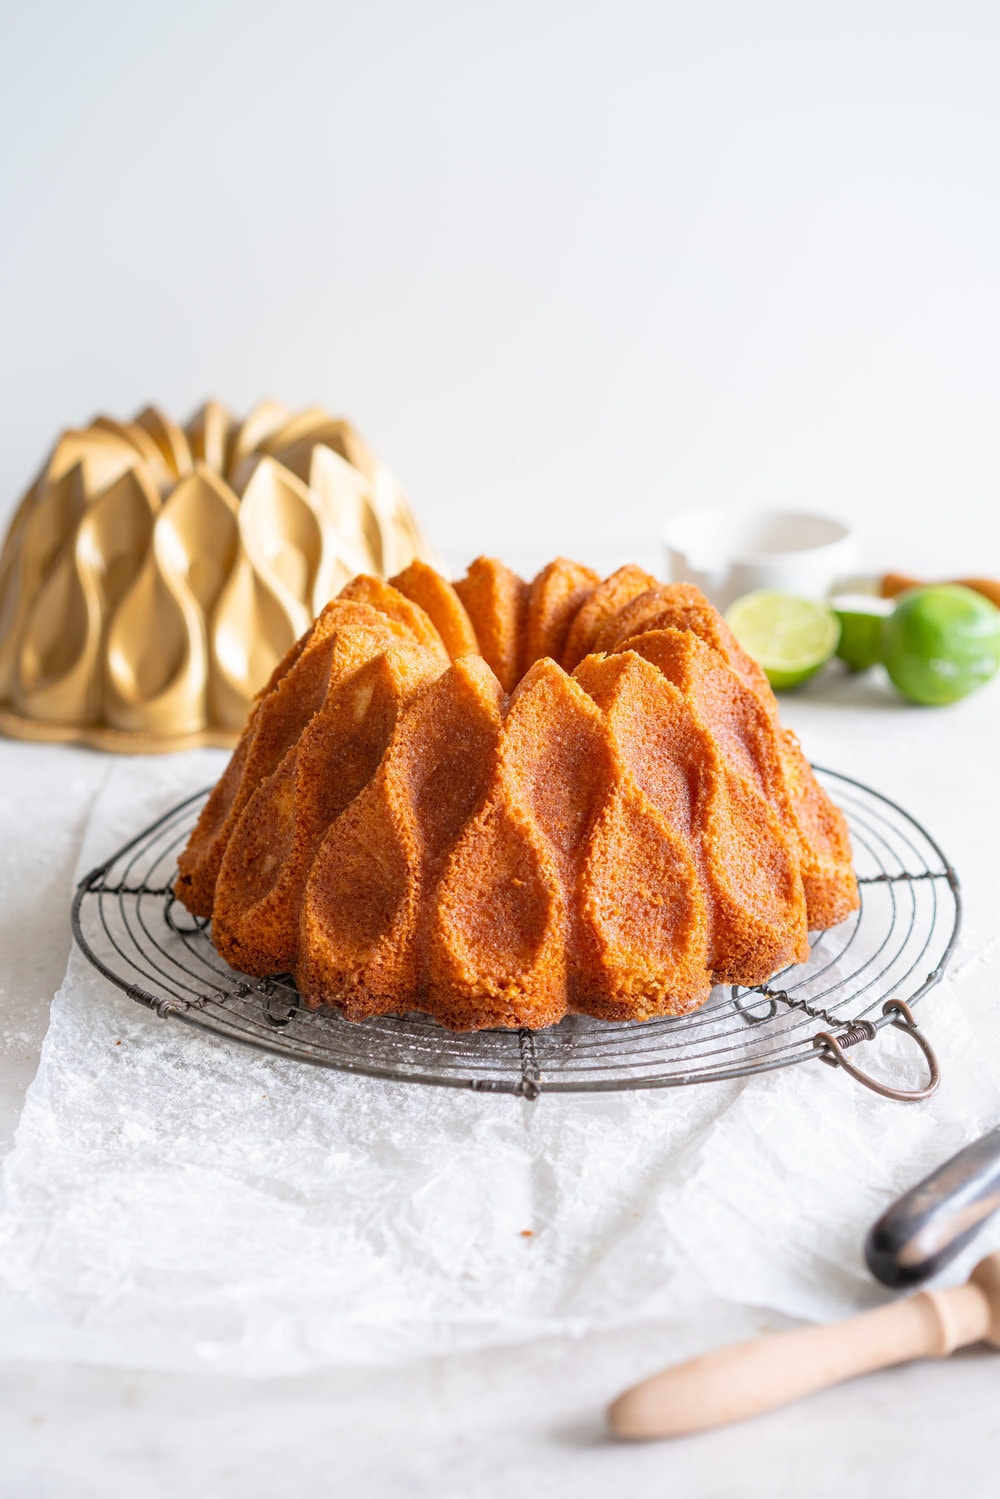 Maida Heatter's East 62nd Street Lemon Cake (Lemon and Lime Bundt Cake). This recipe comes from the legendary Maida Heatter's latest book, Happiness is baking. It is a tender crumbed lemon cake, brushed with a crunchy sugary glaze. Incredibly easy and so, so delicious. #maidaheatter #lemoncake #bundtcake